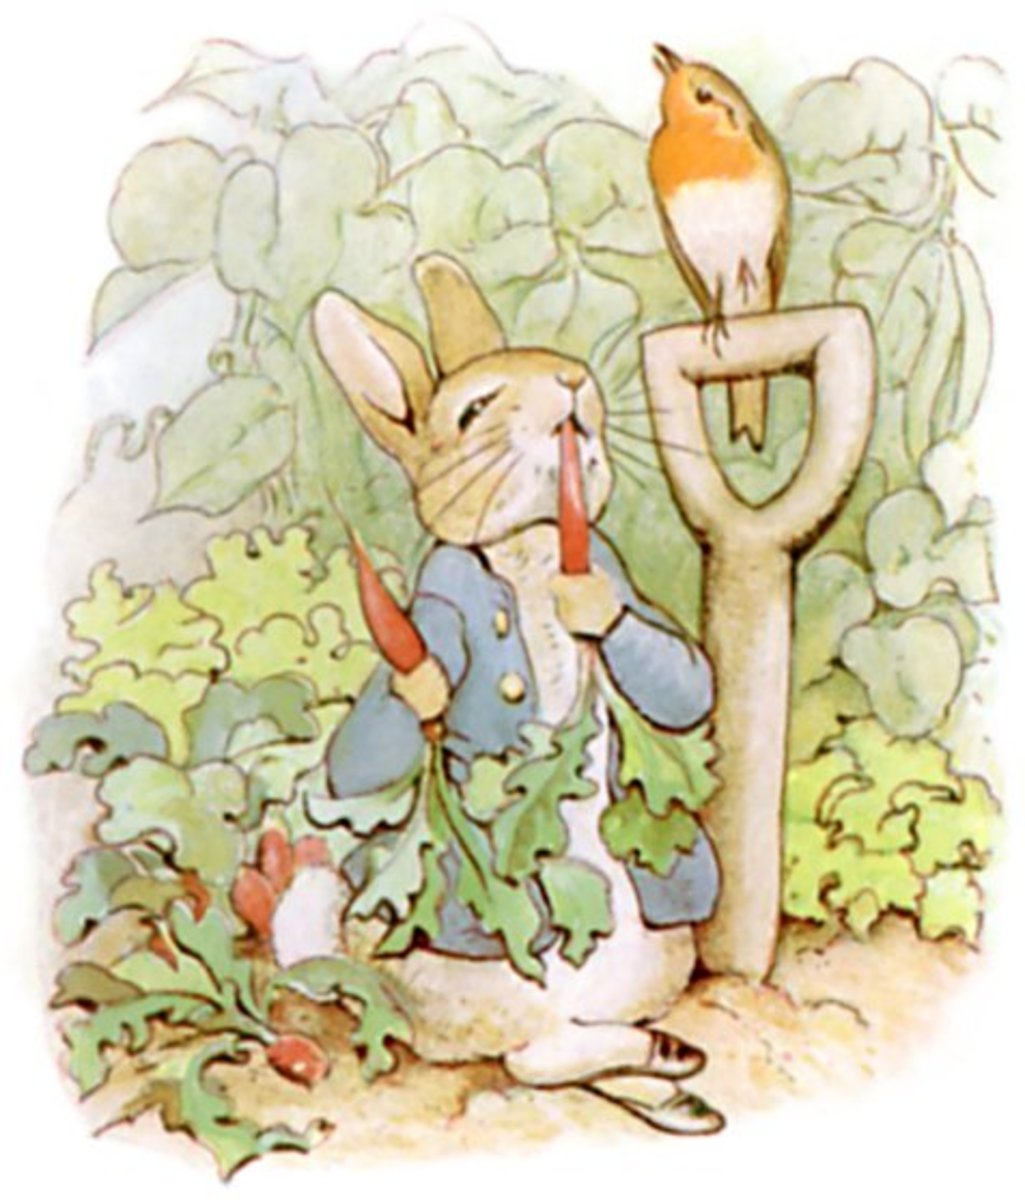 "Original illustration for ""The Tale of Peter Rabbit"" by Beatrix Potter. This was her first book, and its popularity encouraged Potter to go on to write more; she became very wealthy."